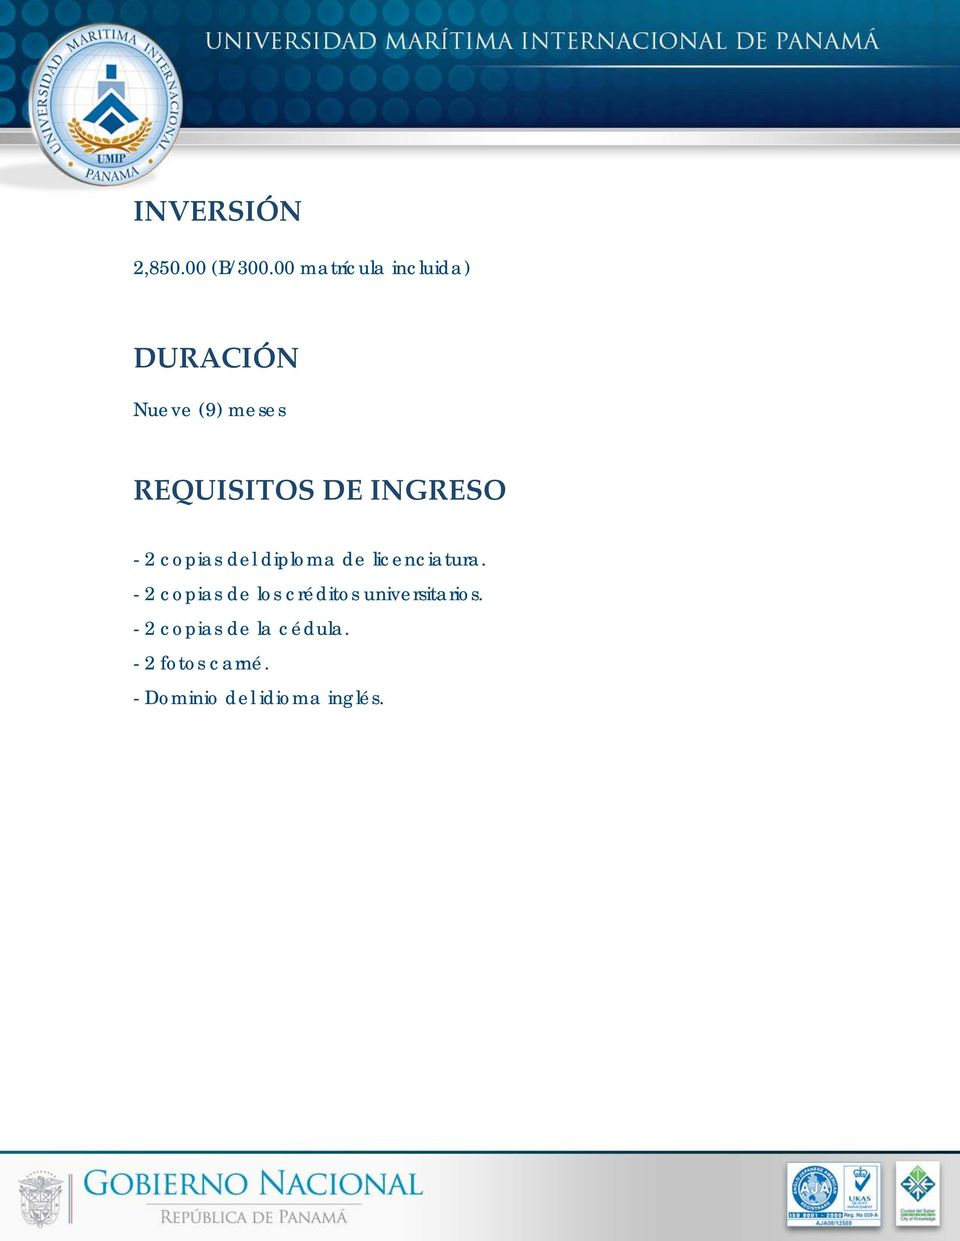 INGRESO - 2 copias del diploma de licenciatura.